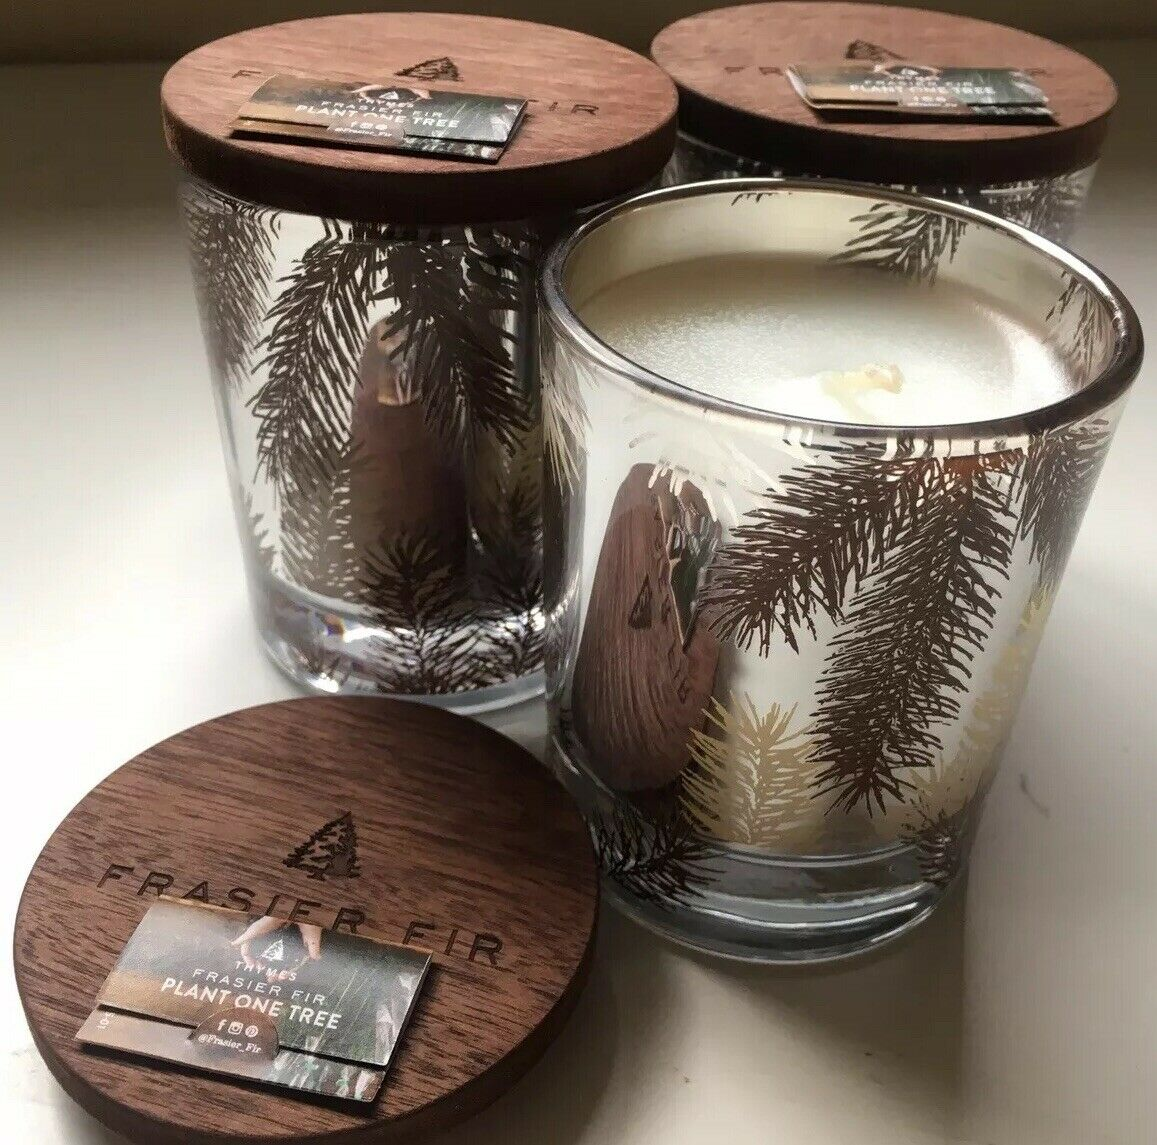 NEW THYMES 3X LOT FRASIER FIR STATEMENT PINE NEEDLE CANDLE 5 OZ